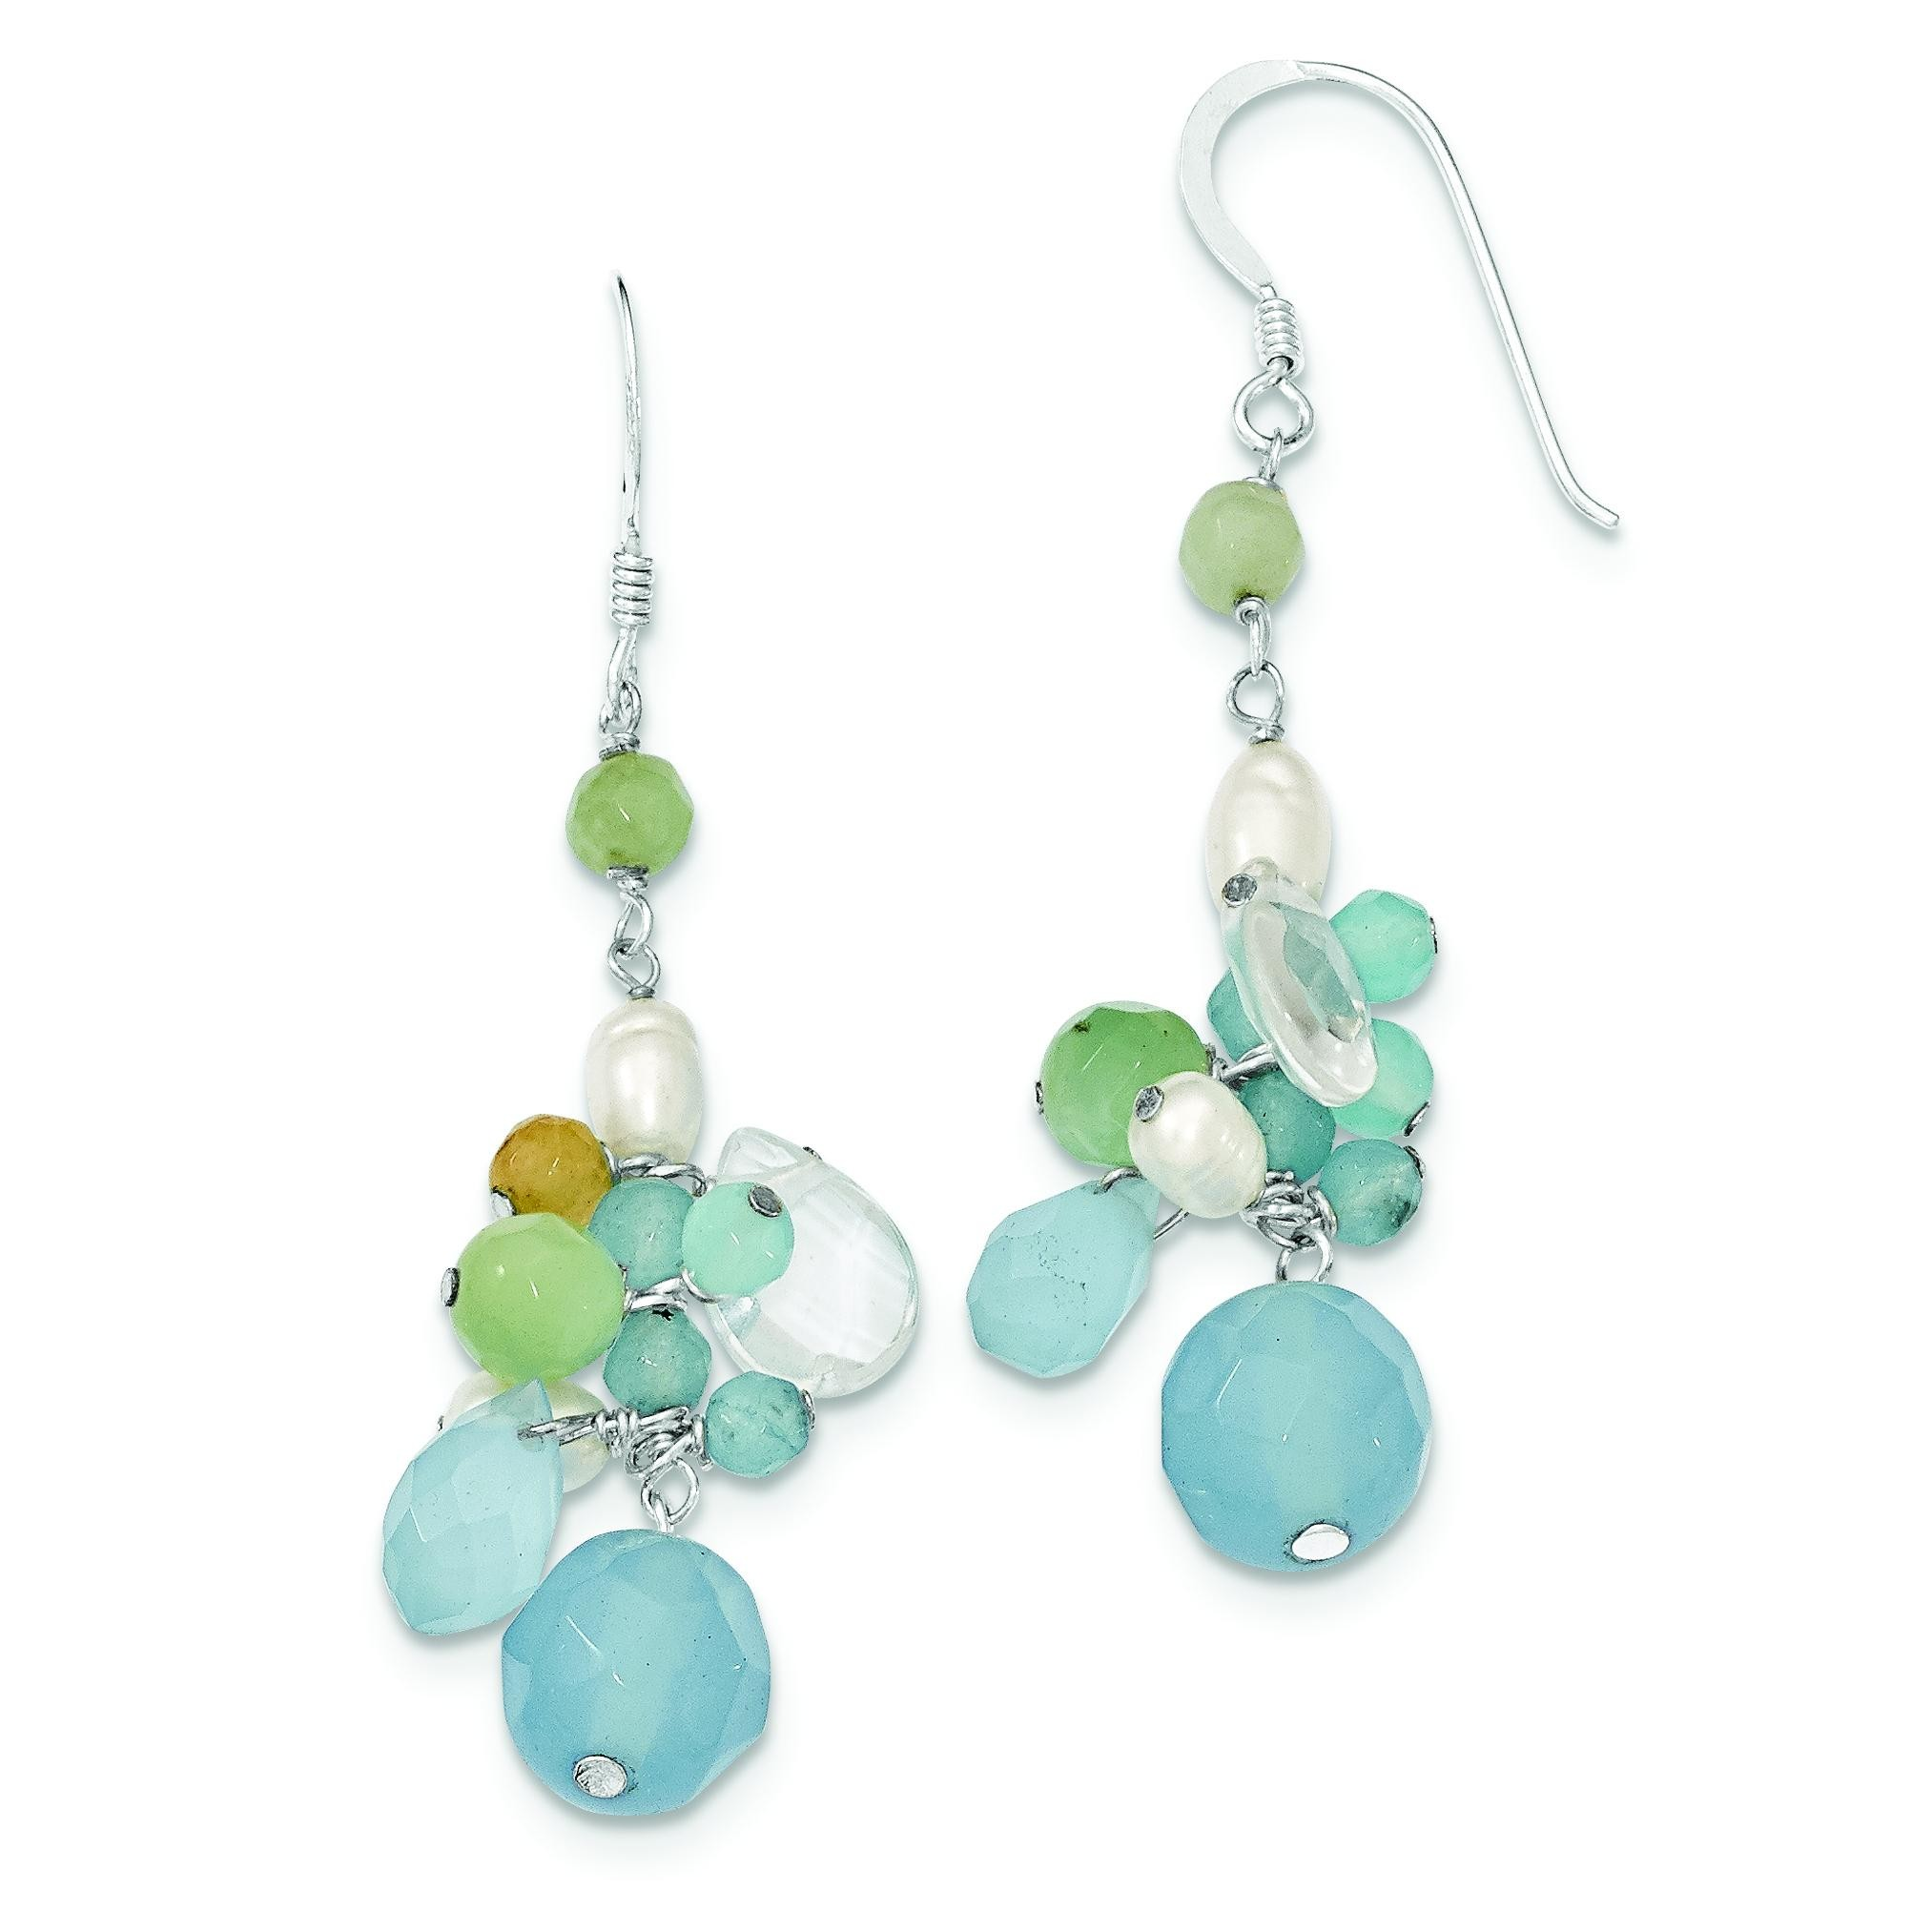 Blue Lace Agate Opalite Amazonite Cultured Pearl Earrings in Sterling Silver